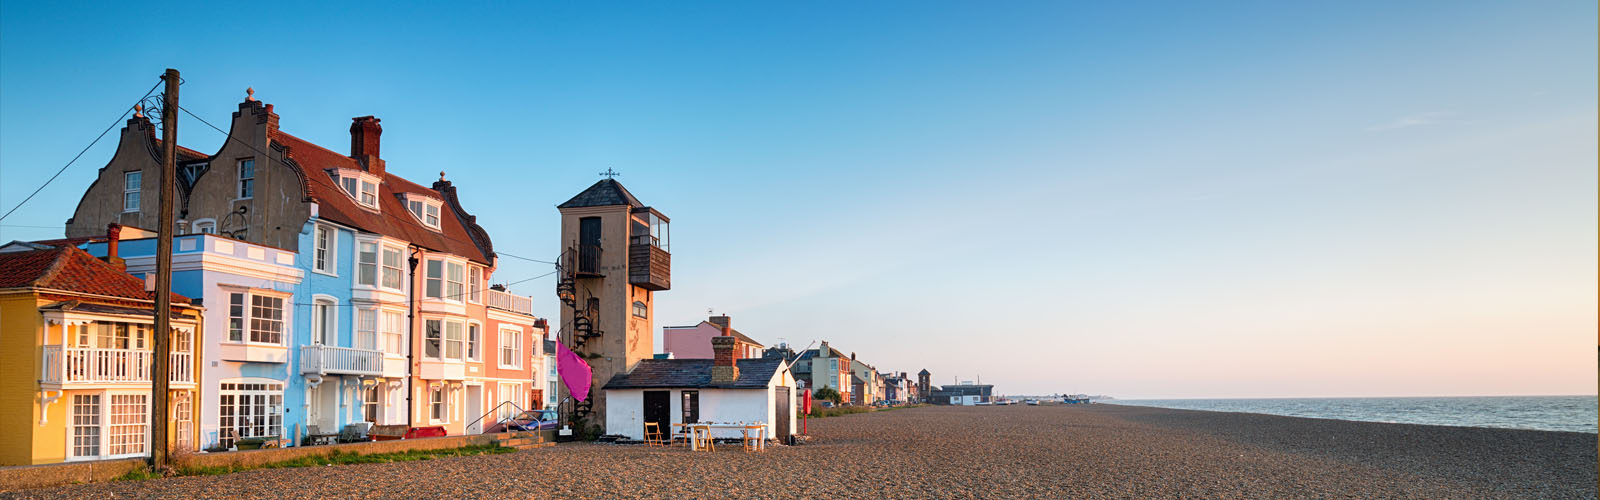 The seafront and beach in Aldeburgh on the Suffolk coast.